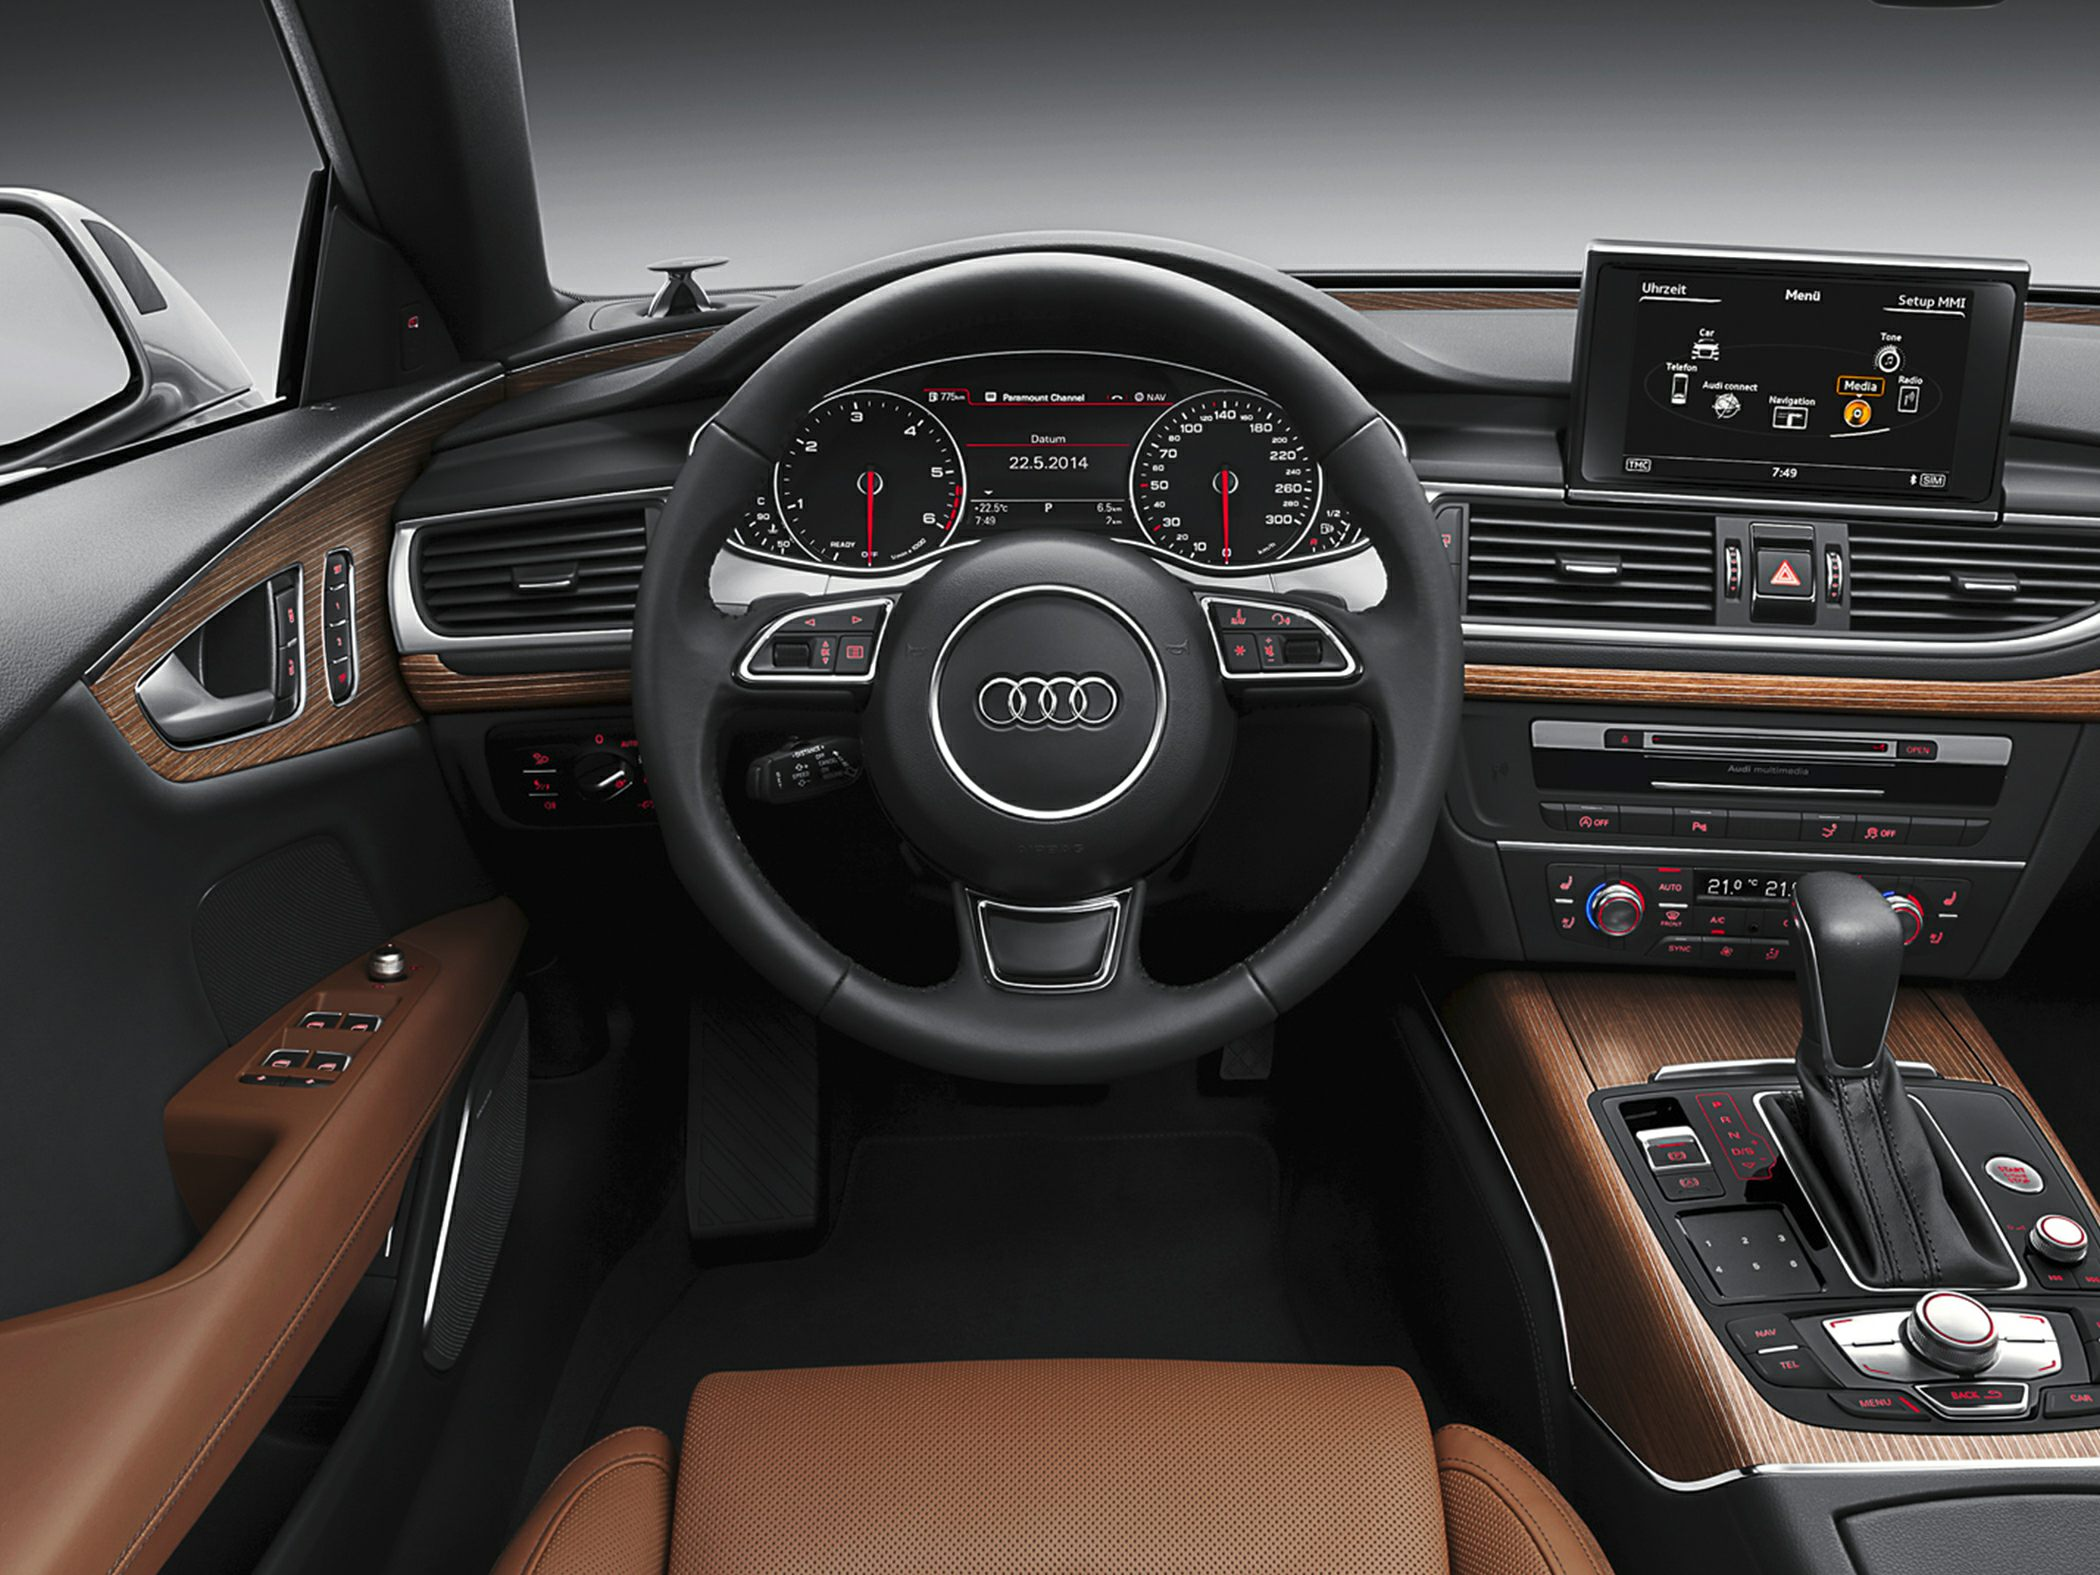 trim leases vaughan img luxury komfort audi large select automatic new sale for utility sport pfaff in awd vehicles